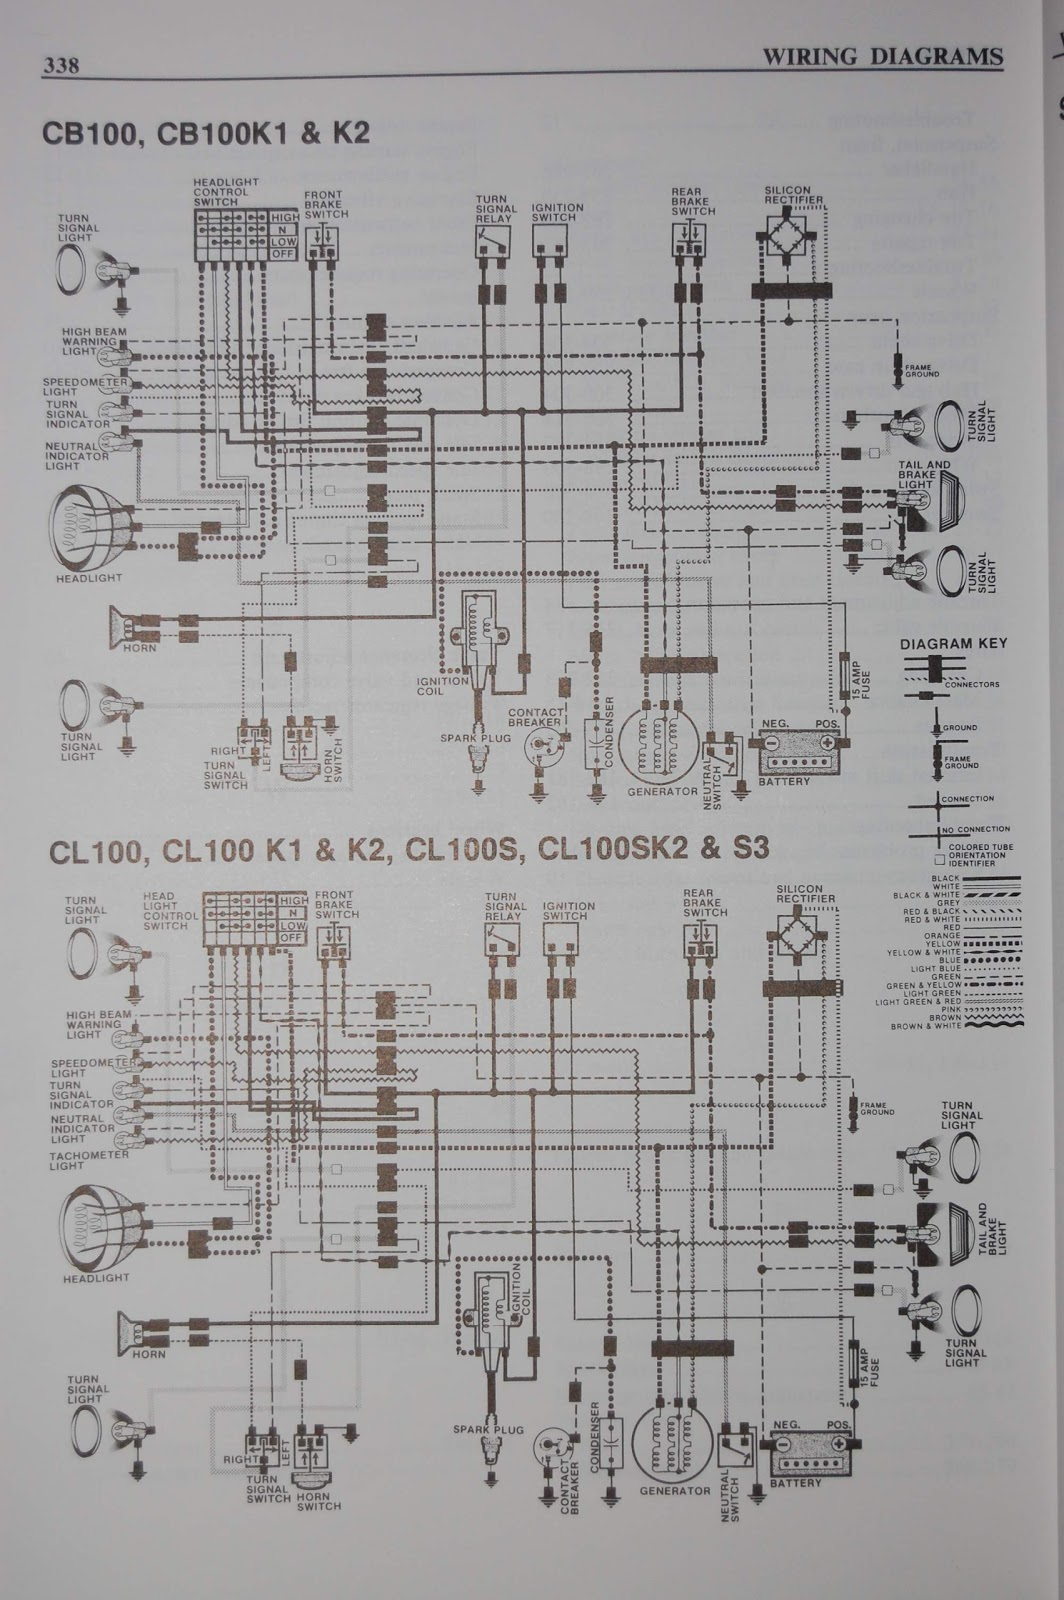 CB100+CL100+wiring+diagram 100 [ wiring diagram for xt500 ] powerdynamo assembly xs650 wiring diagram at gsmportal.co